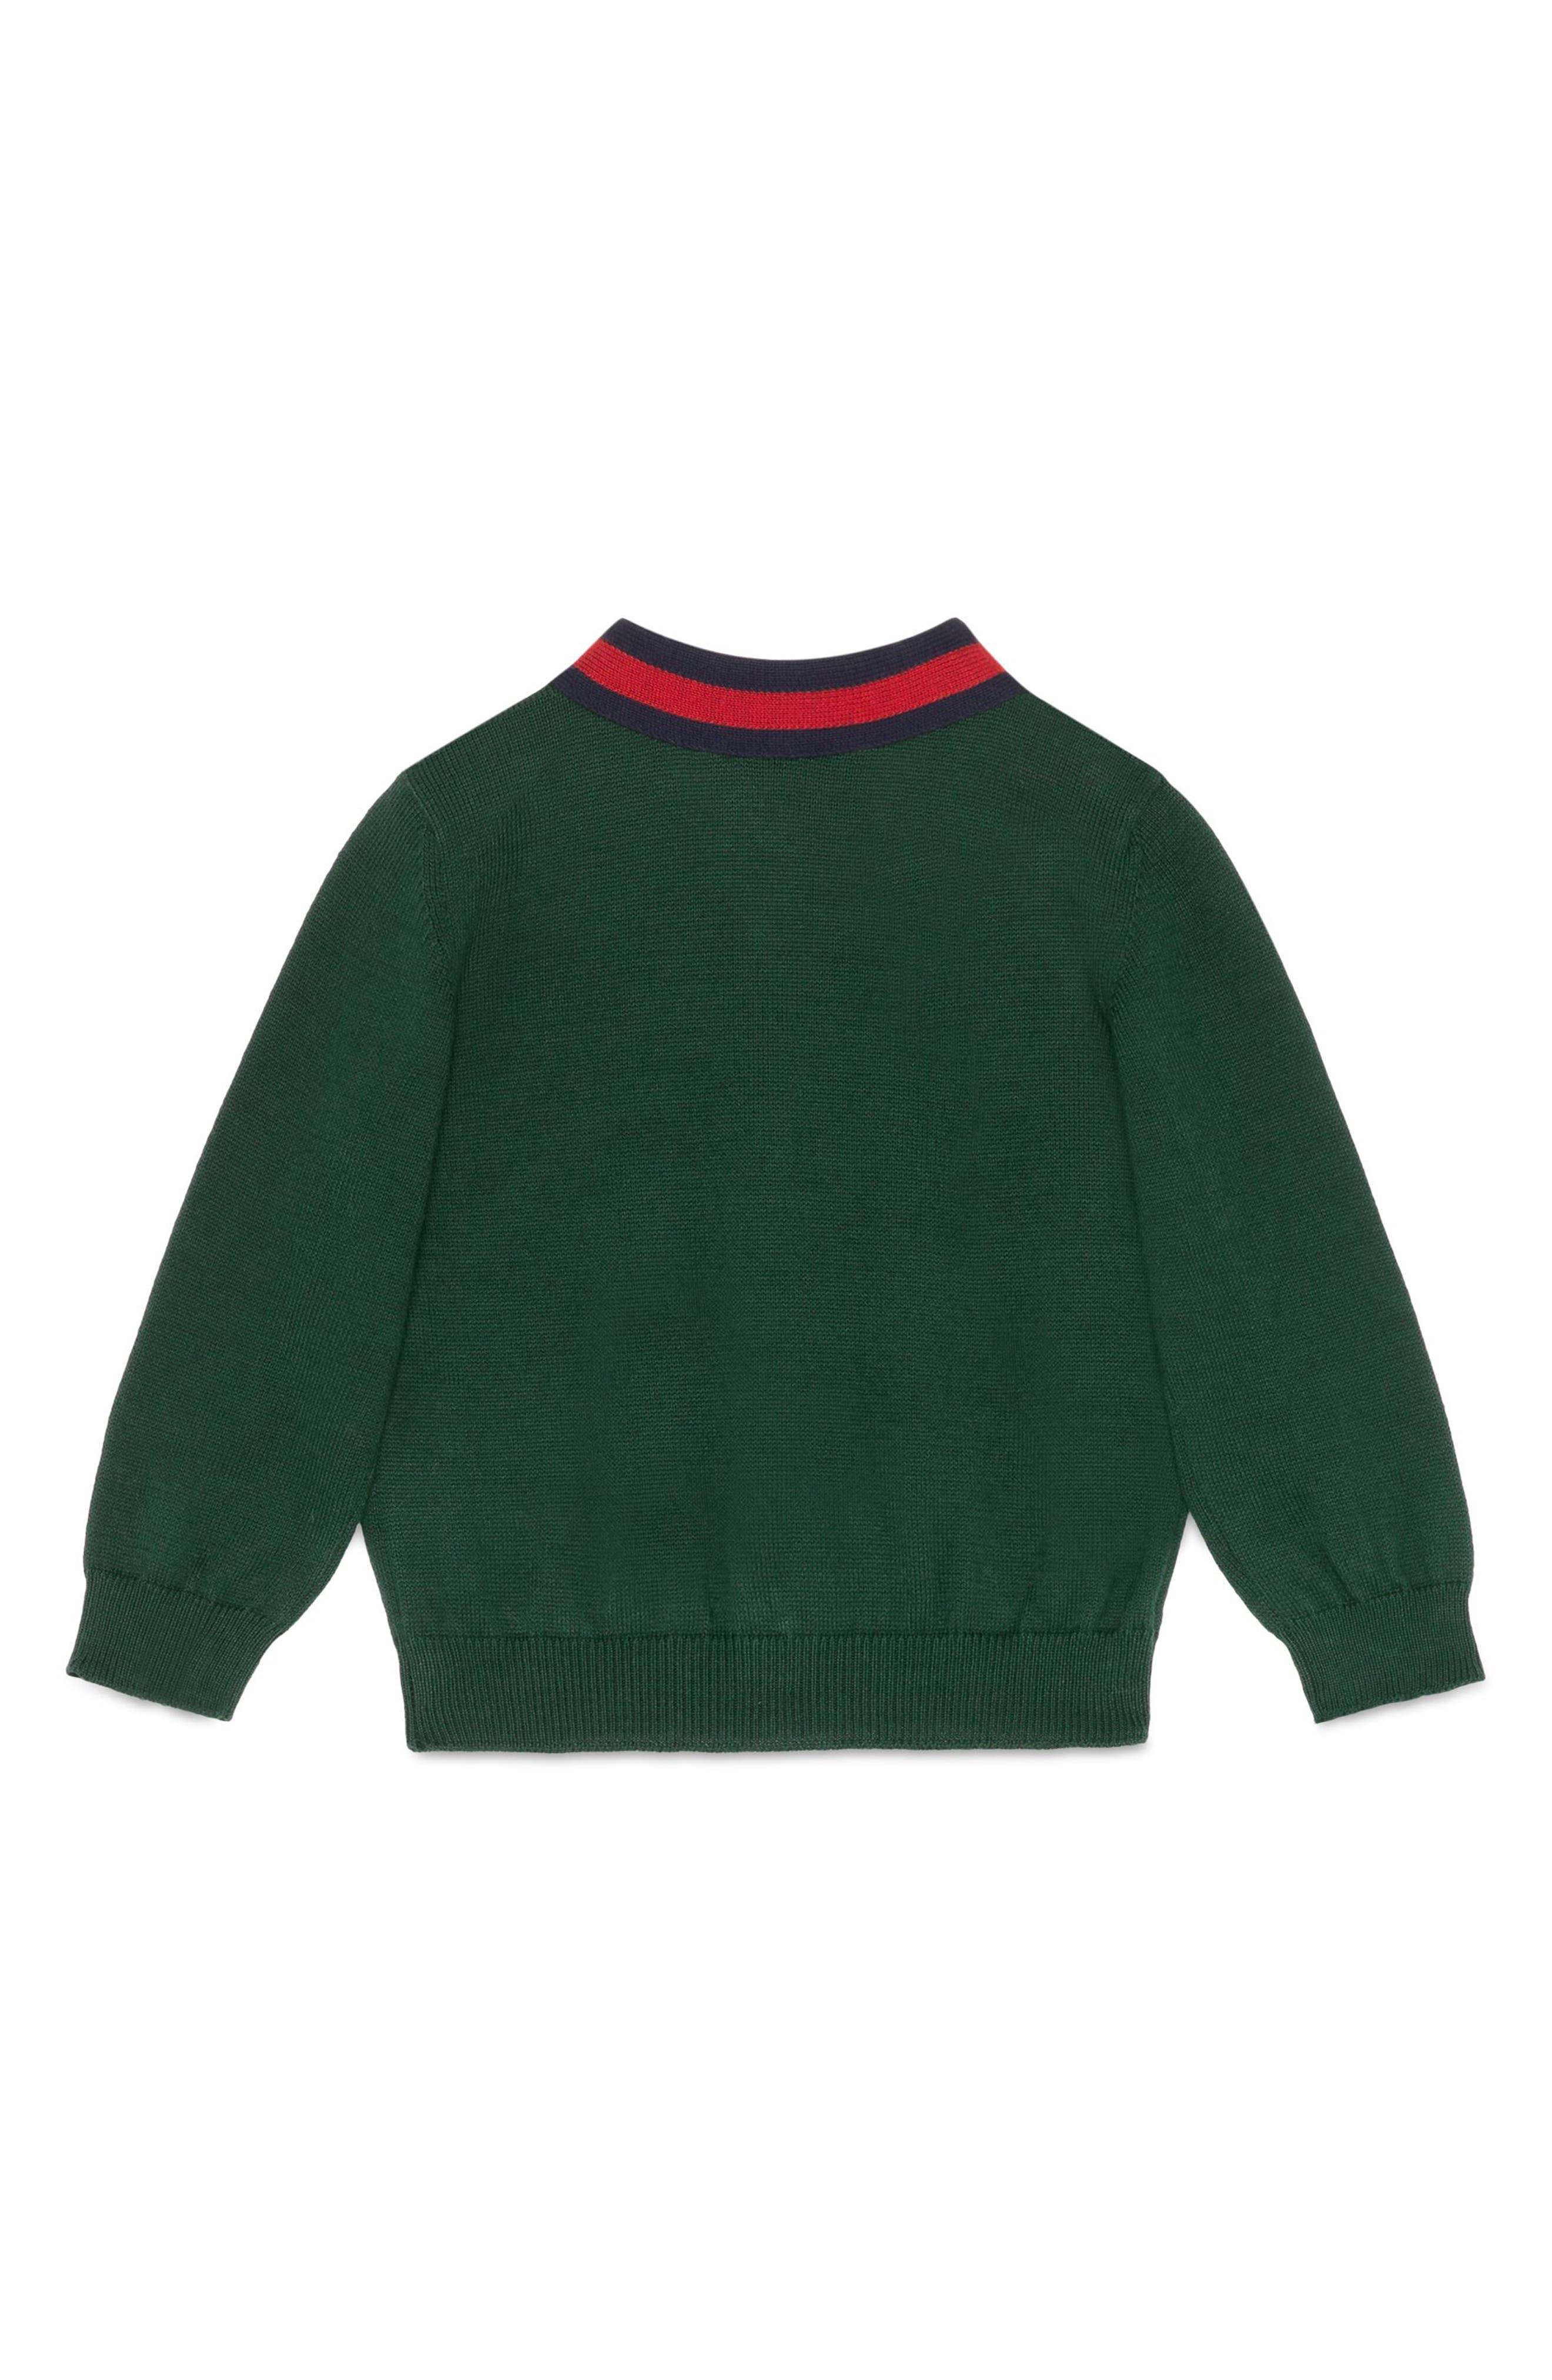 Knit Cotton Cardigan,                             Alternate thumbnail 2, color,                             Gucci Green